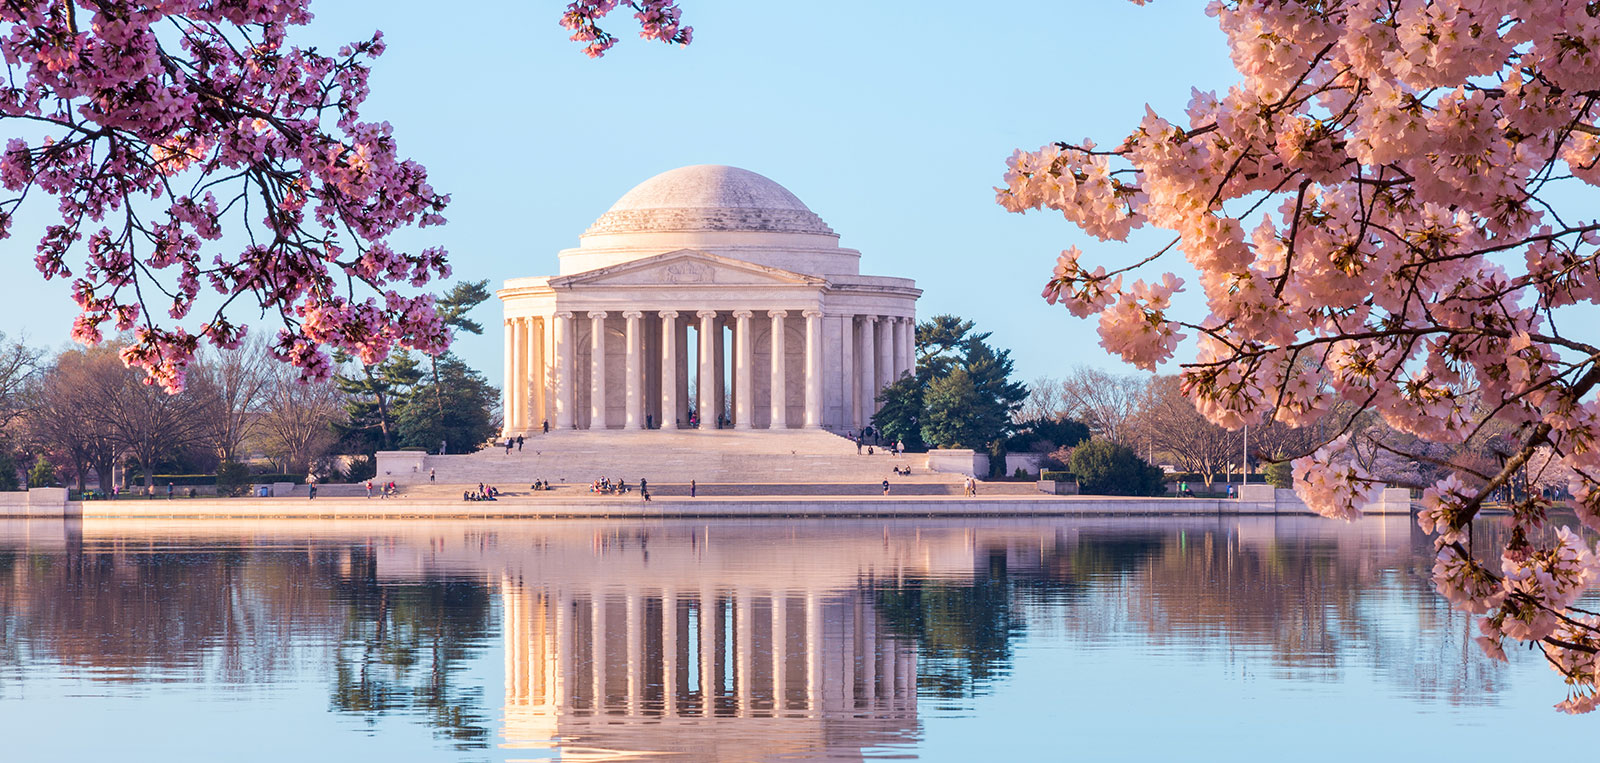 Cherry Blossom Festival Events One Washington Circle Hotel,Perennials Plant With Purple Flowers And Green Leaves